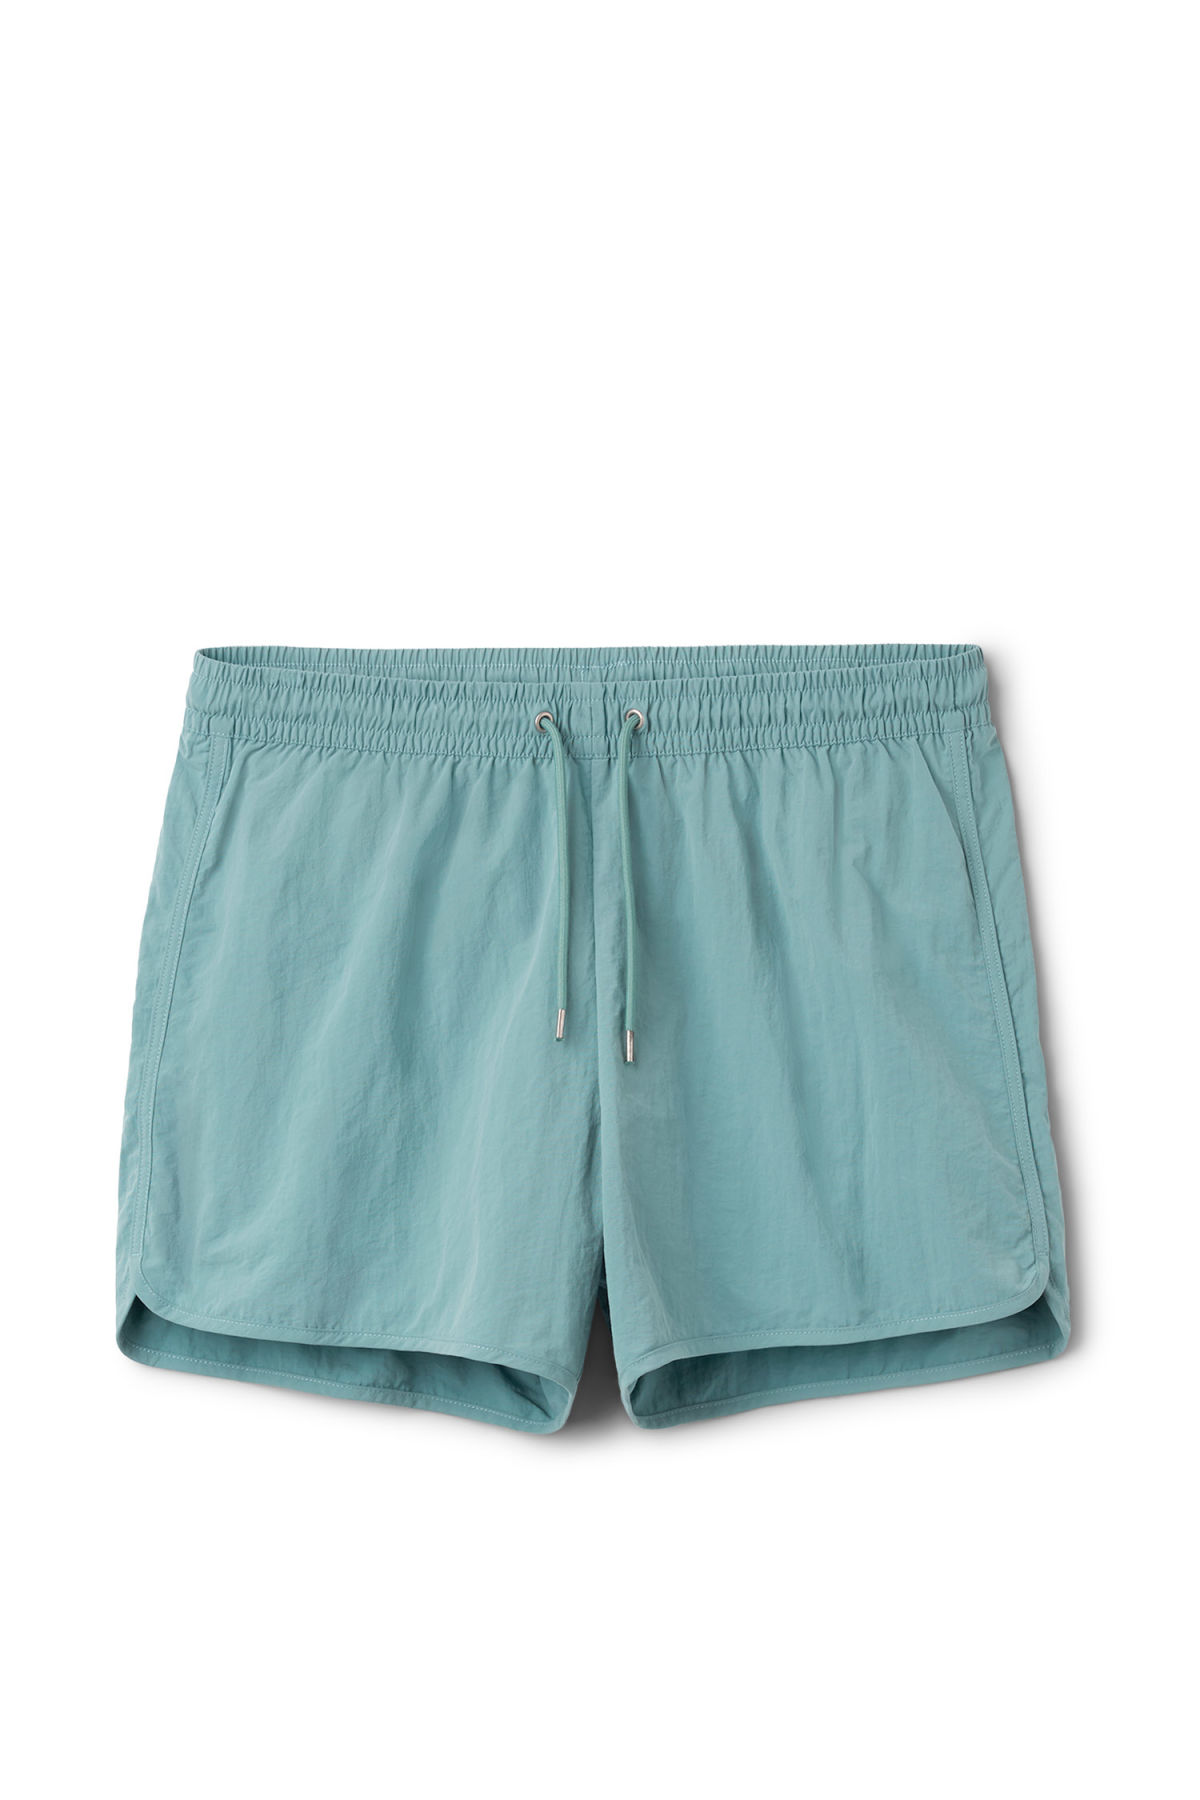 Front image of Weekday tan structure swim shorts in turquoise